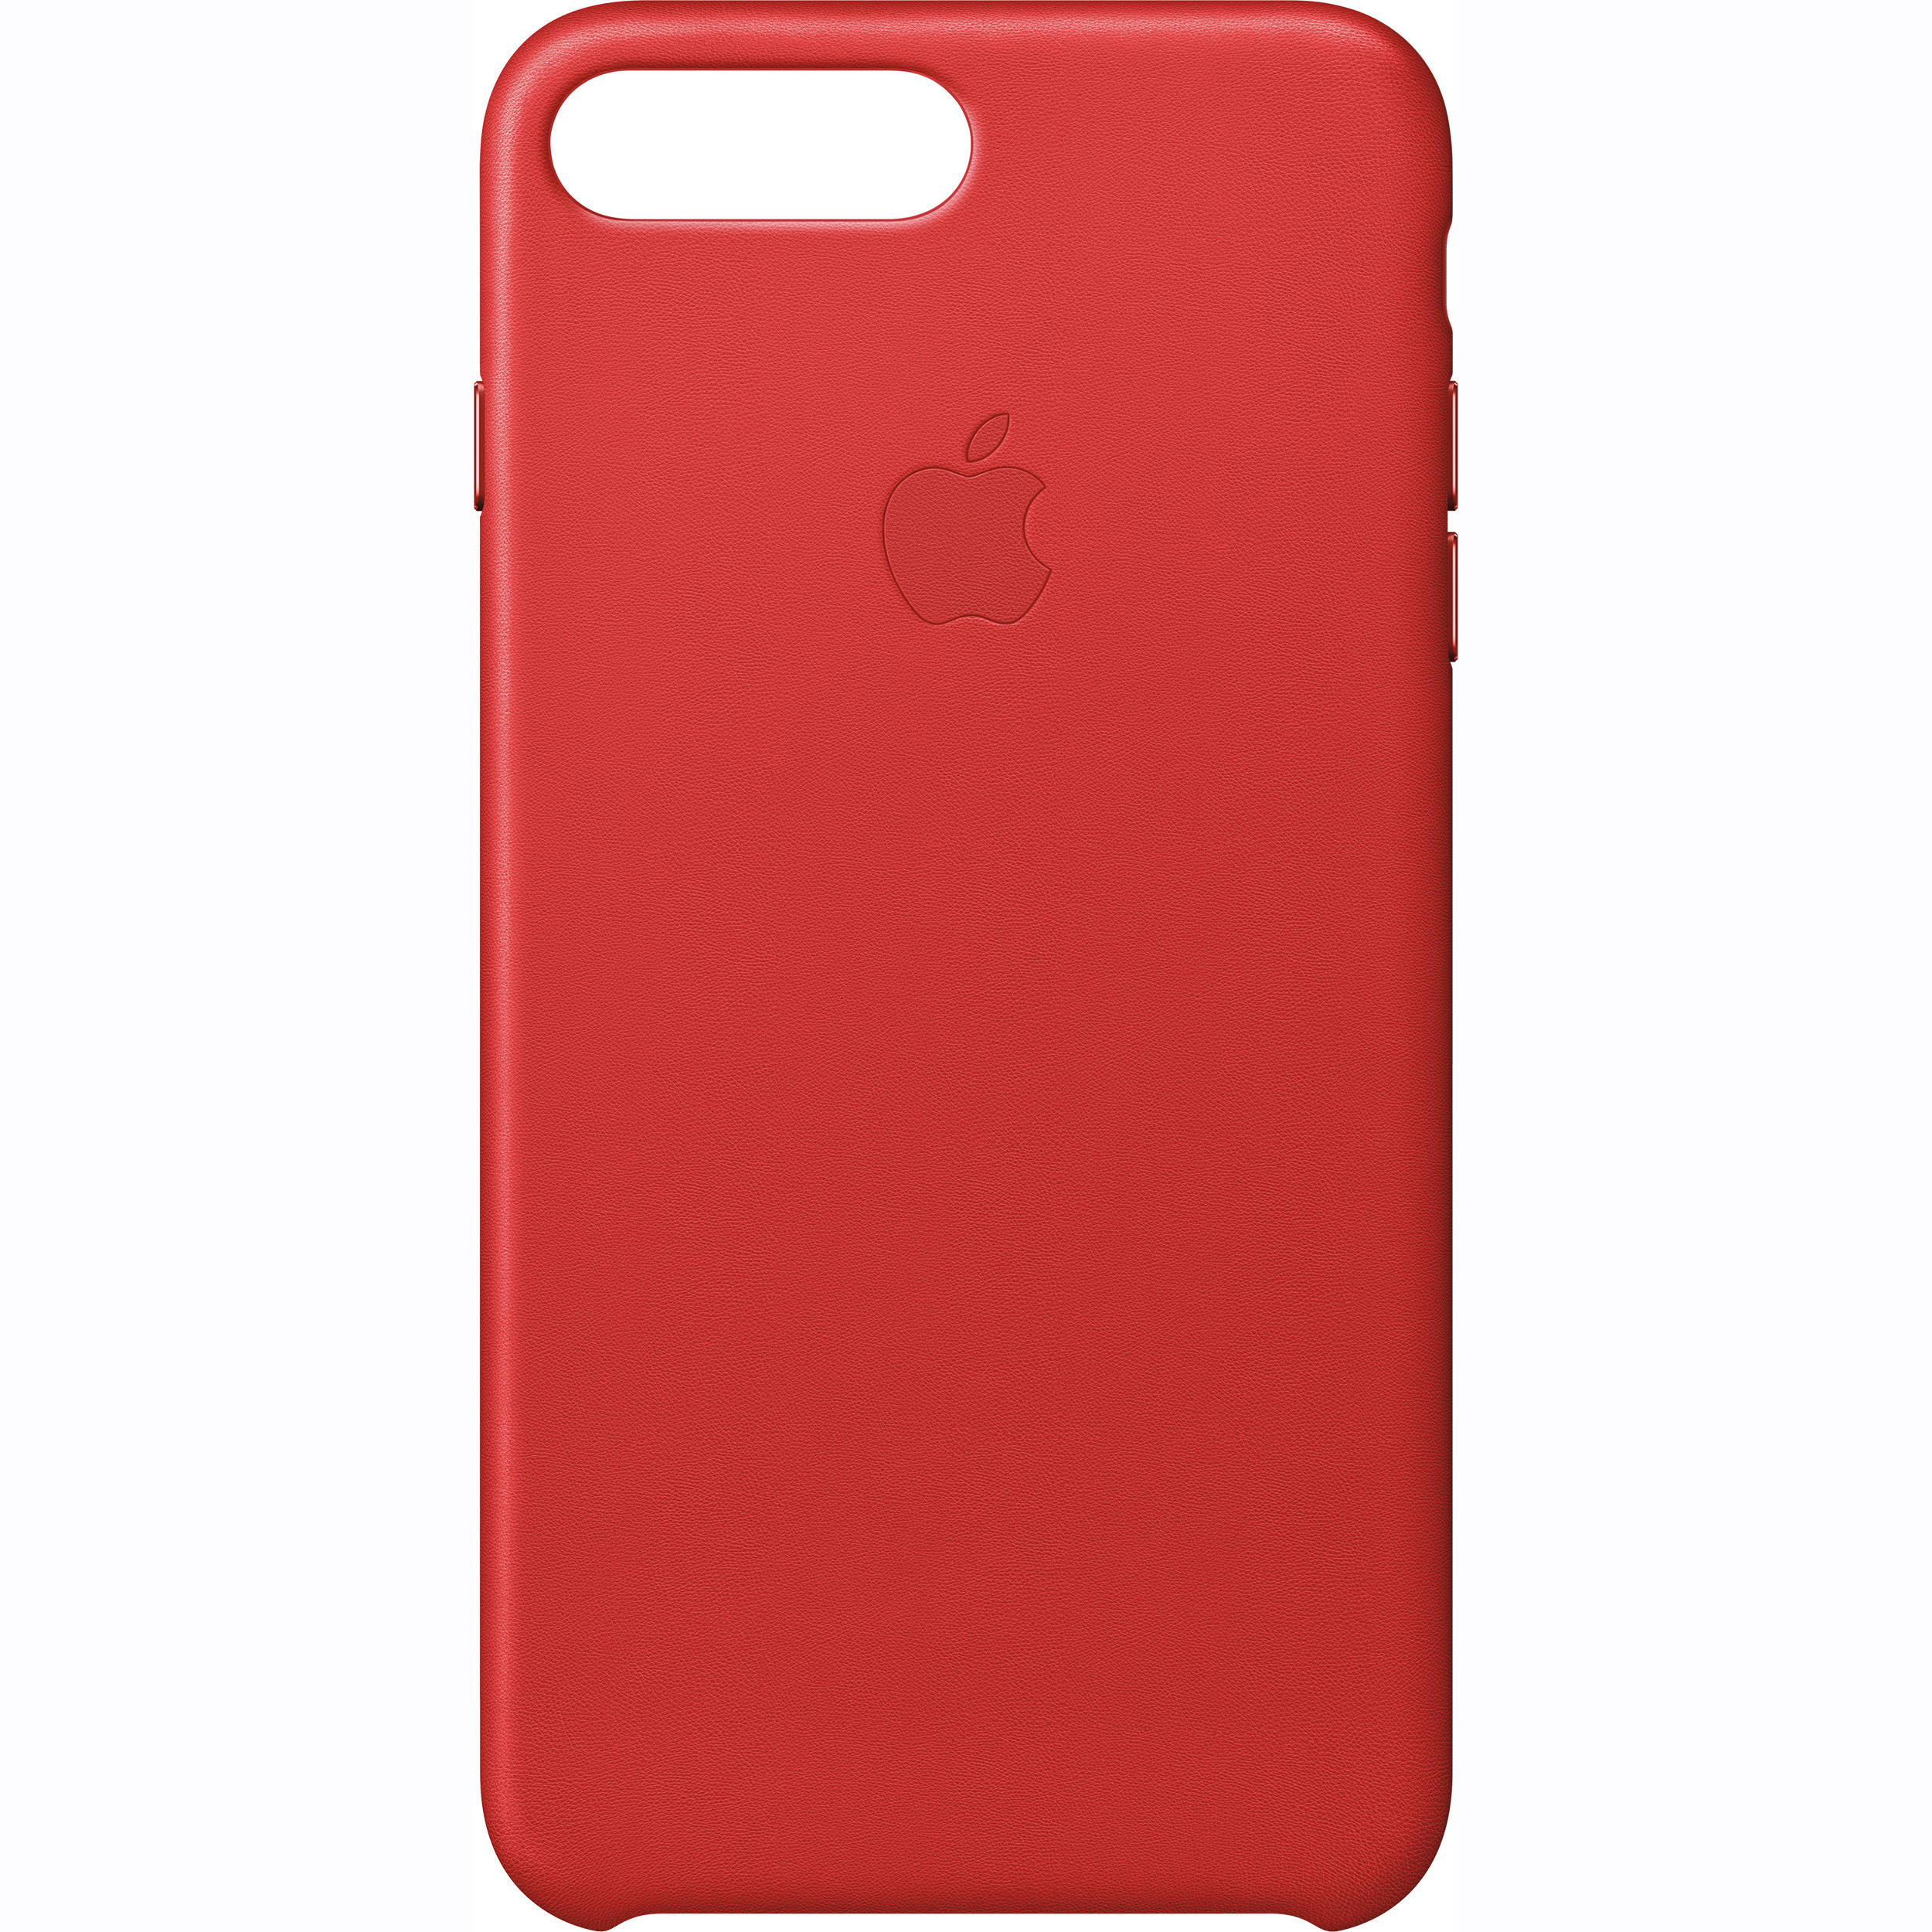 huge discount da6c9 c1b21 Apple iPhone 7 Plus Leather Case ((PRODUCT)RED)